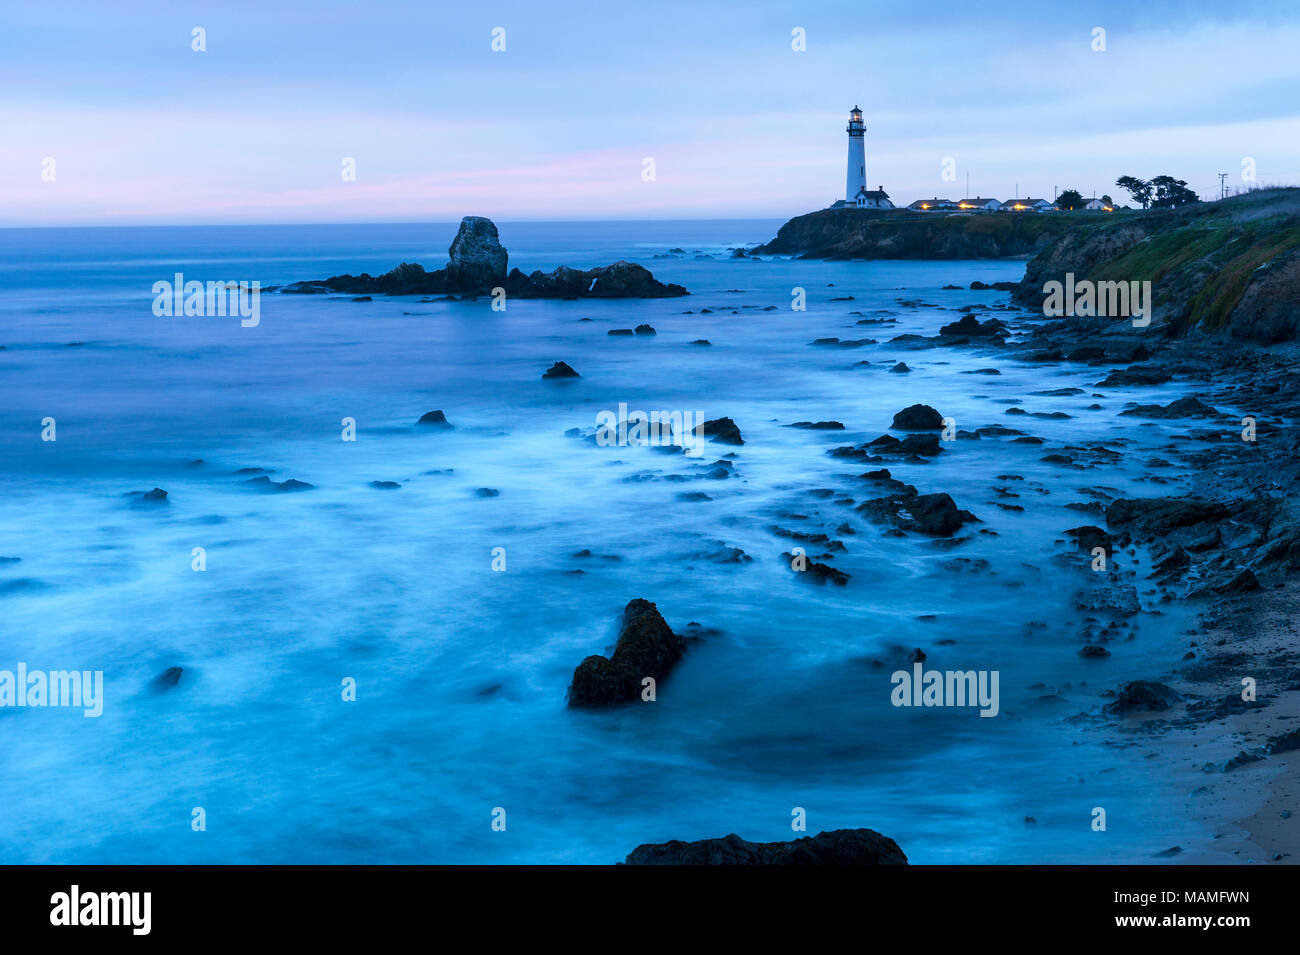 Picturesque historic Pigeon Point Lighthouse, Pescadero, breaking waves on the Pacific Coast of California at dusk, United States of America, USA. Stock Photo